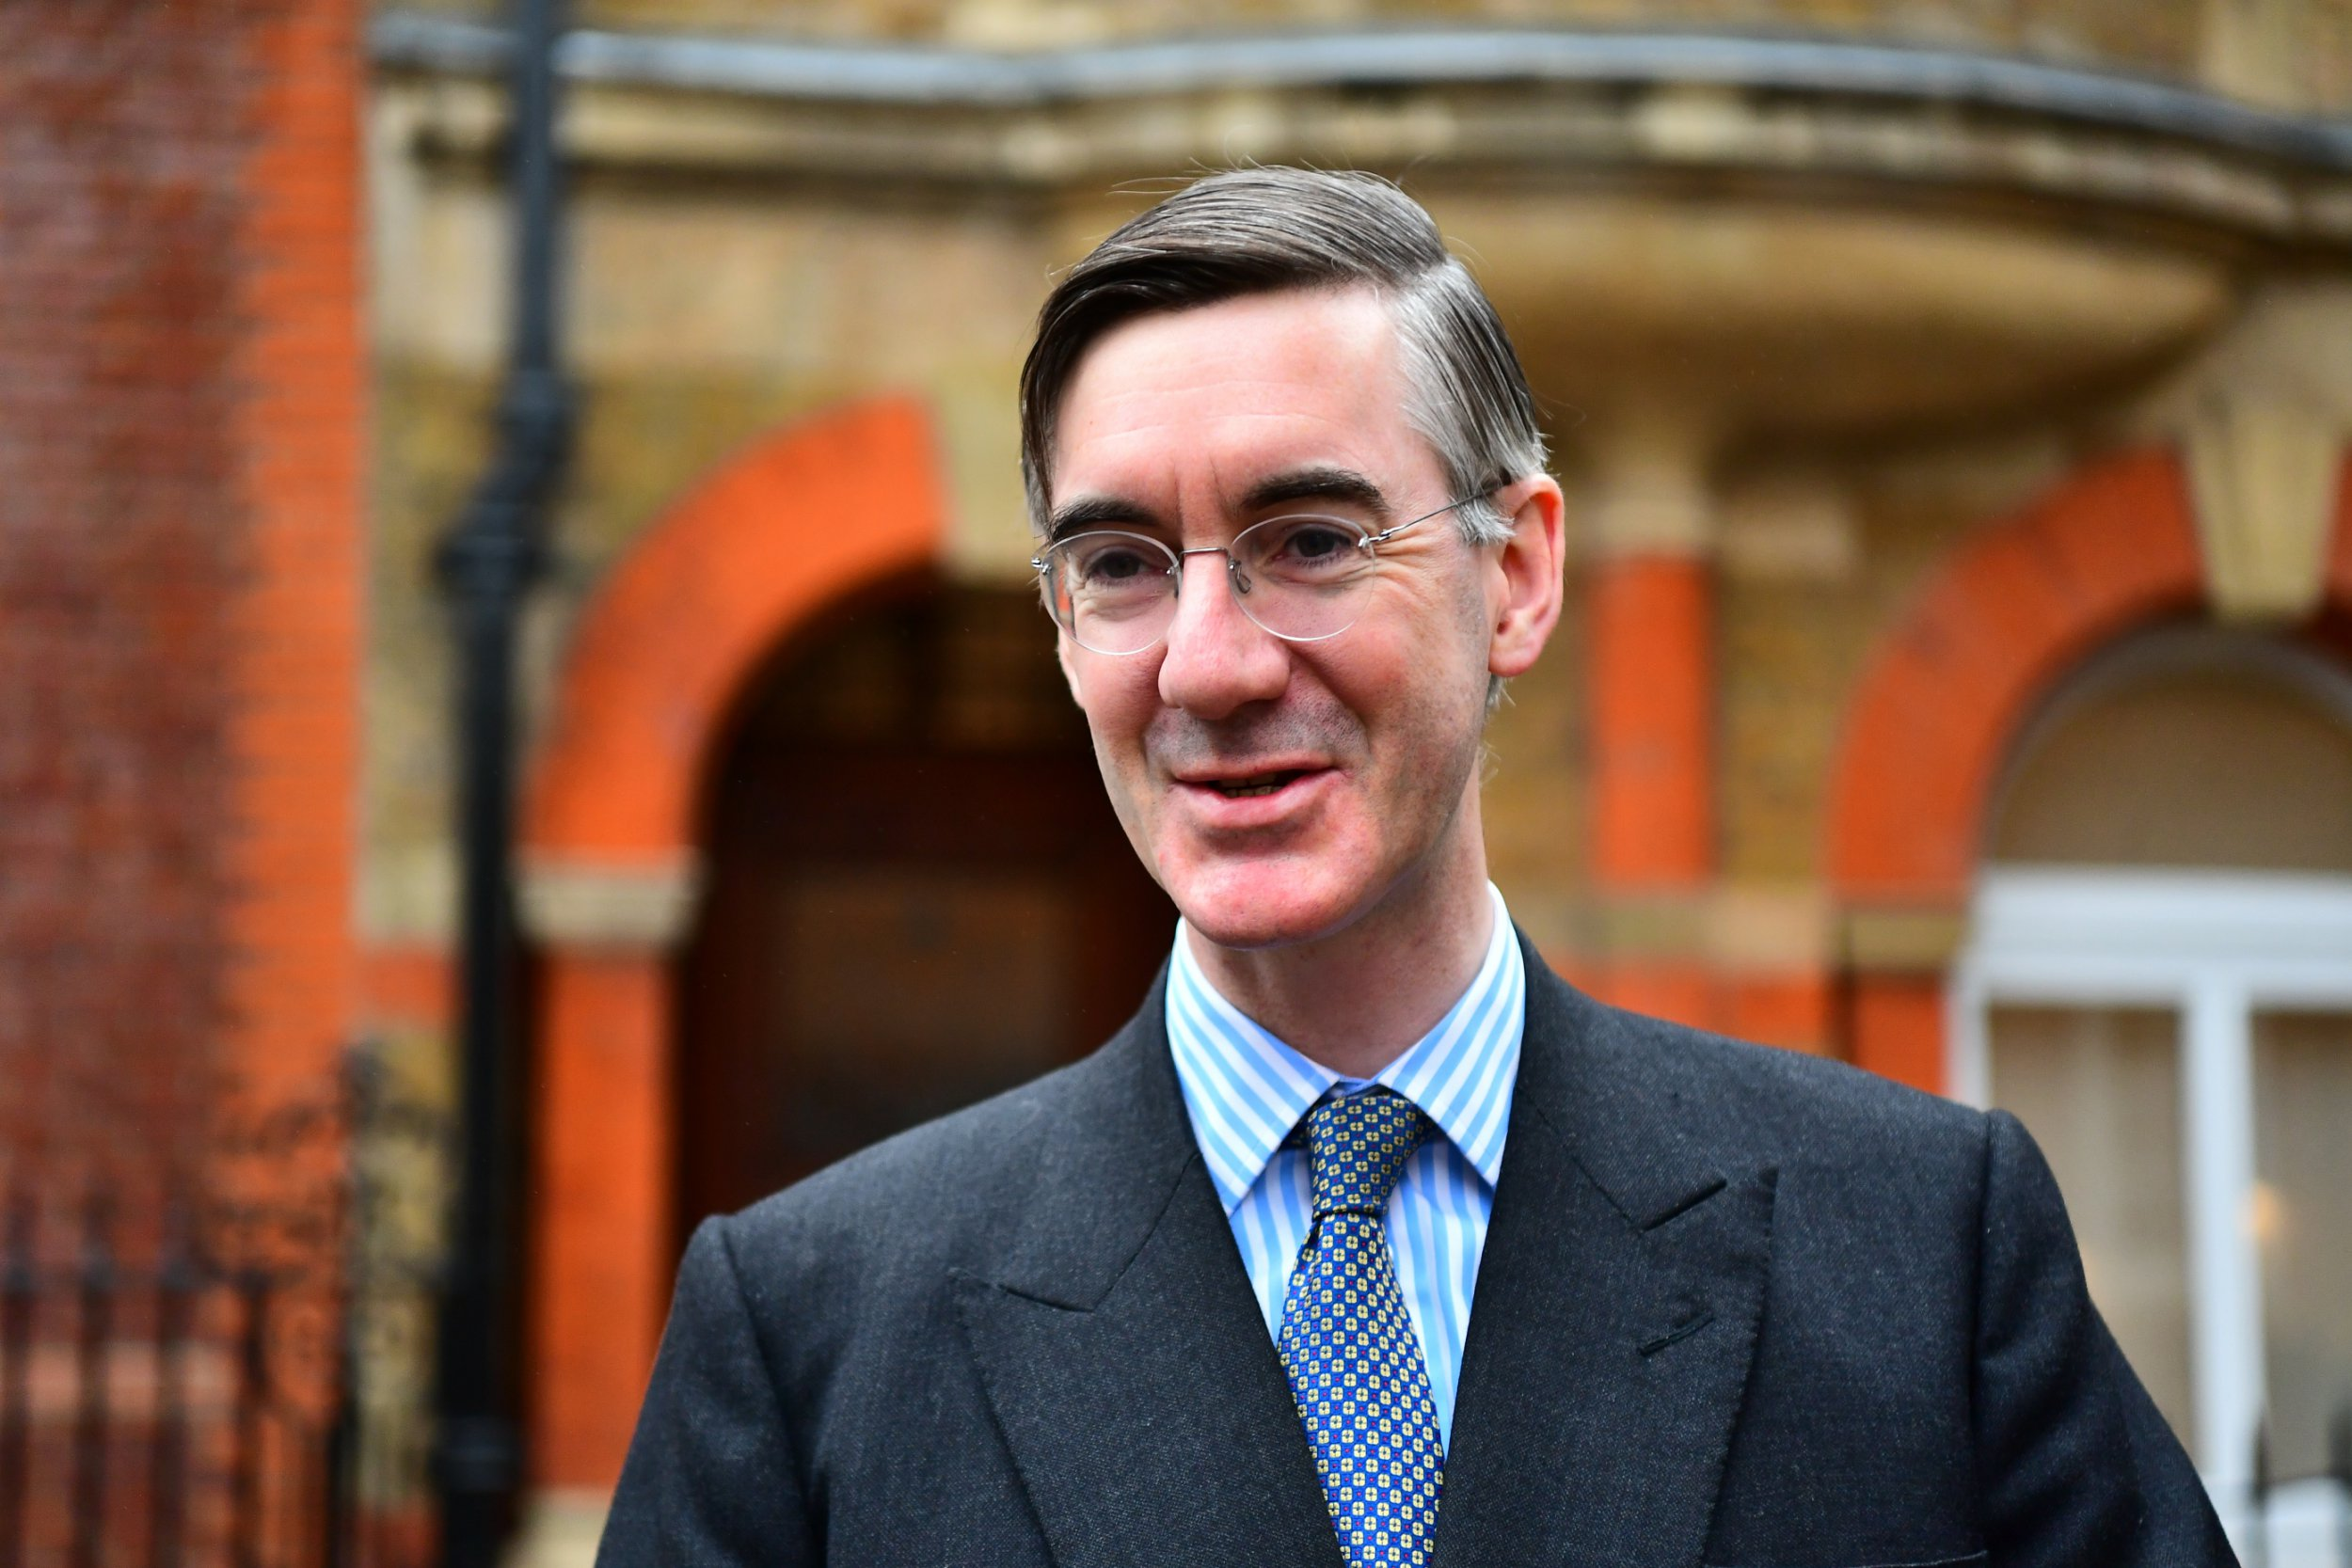 Jacob Rees-Mogg 'has earned £7,000,000 from investments since Brexit'